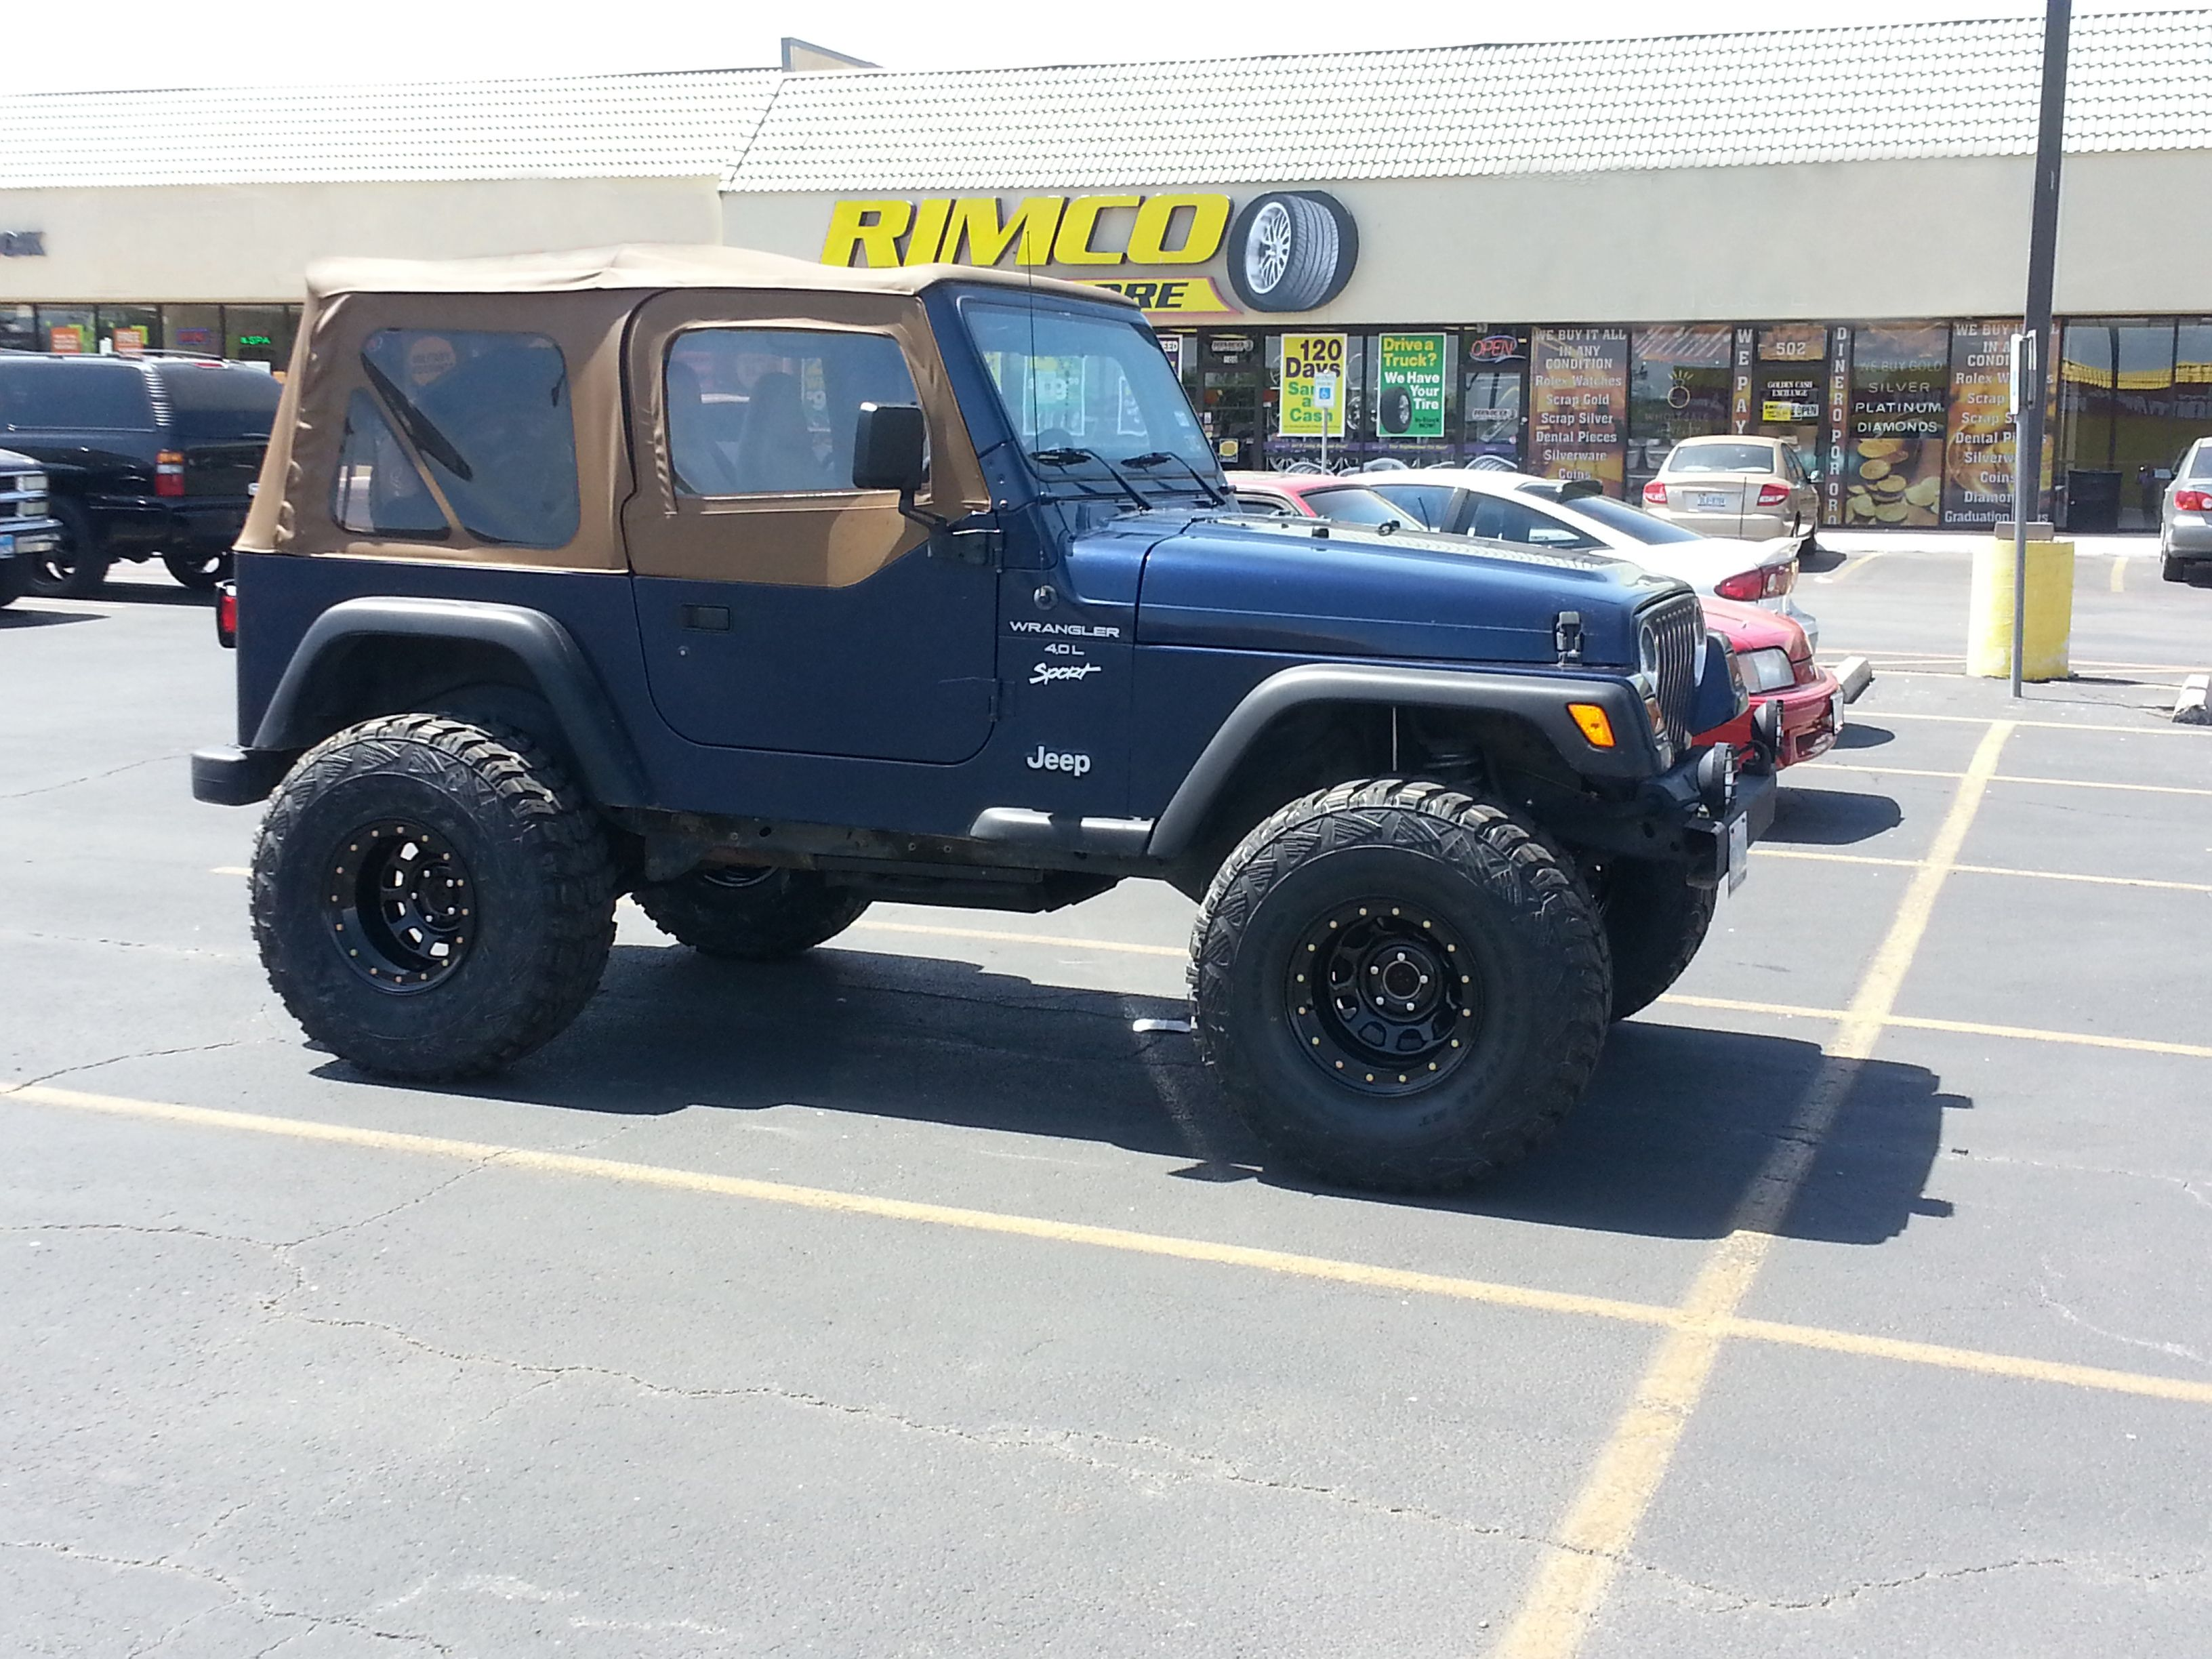 Check Out John Deltra S 1998 Jeep Wrangler Sporting 16 Pacer 252 Wheels And 32x12x50x15 Tires This Install Also Involved A Six Inch Lift Than 1998 Jeep Wrangler Jeep Wrangler Sport Jeep Wrangler